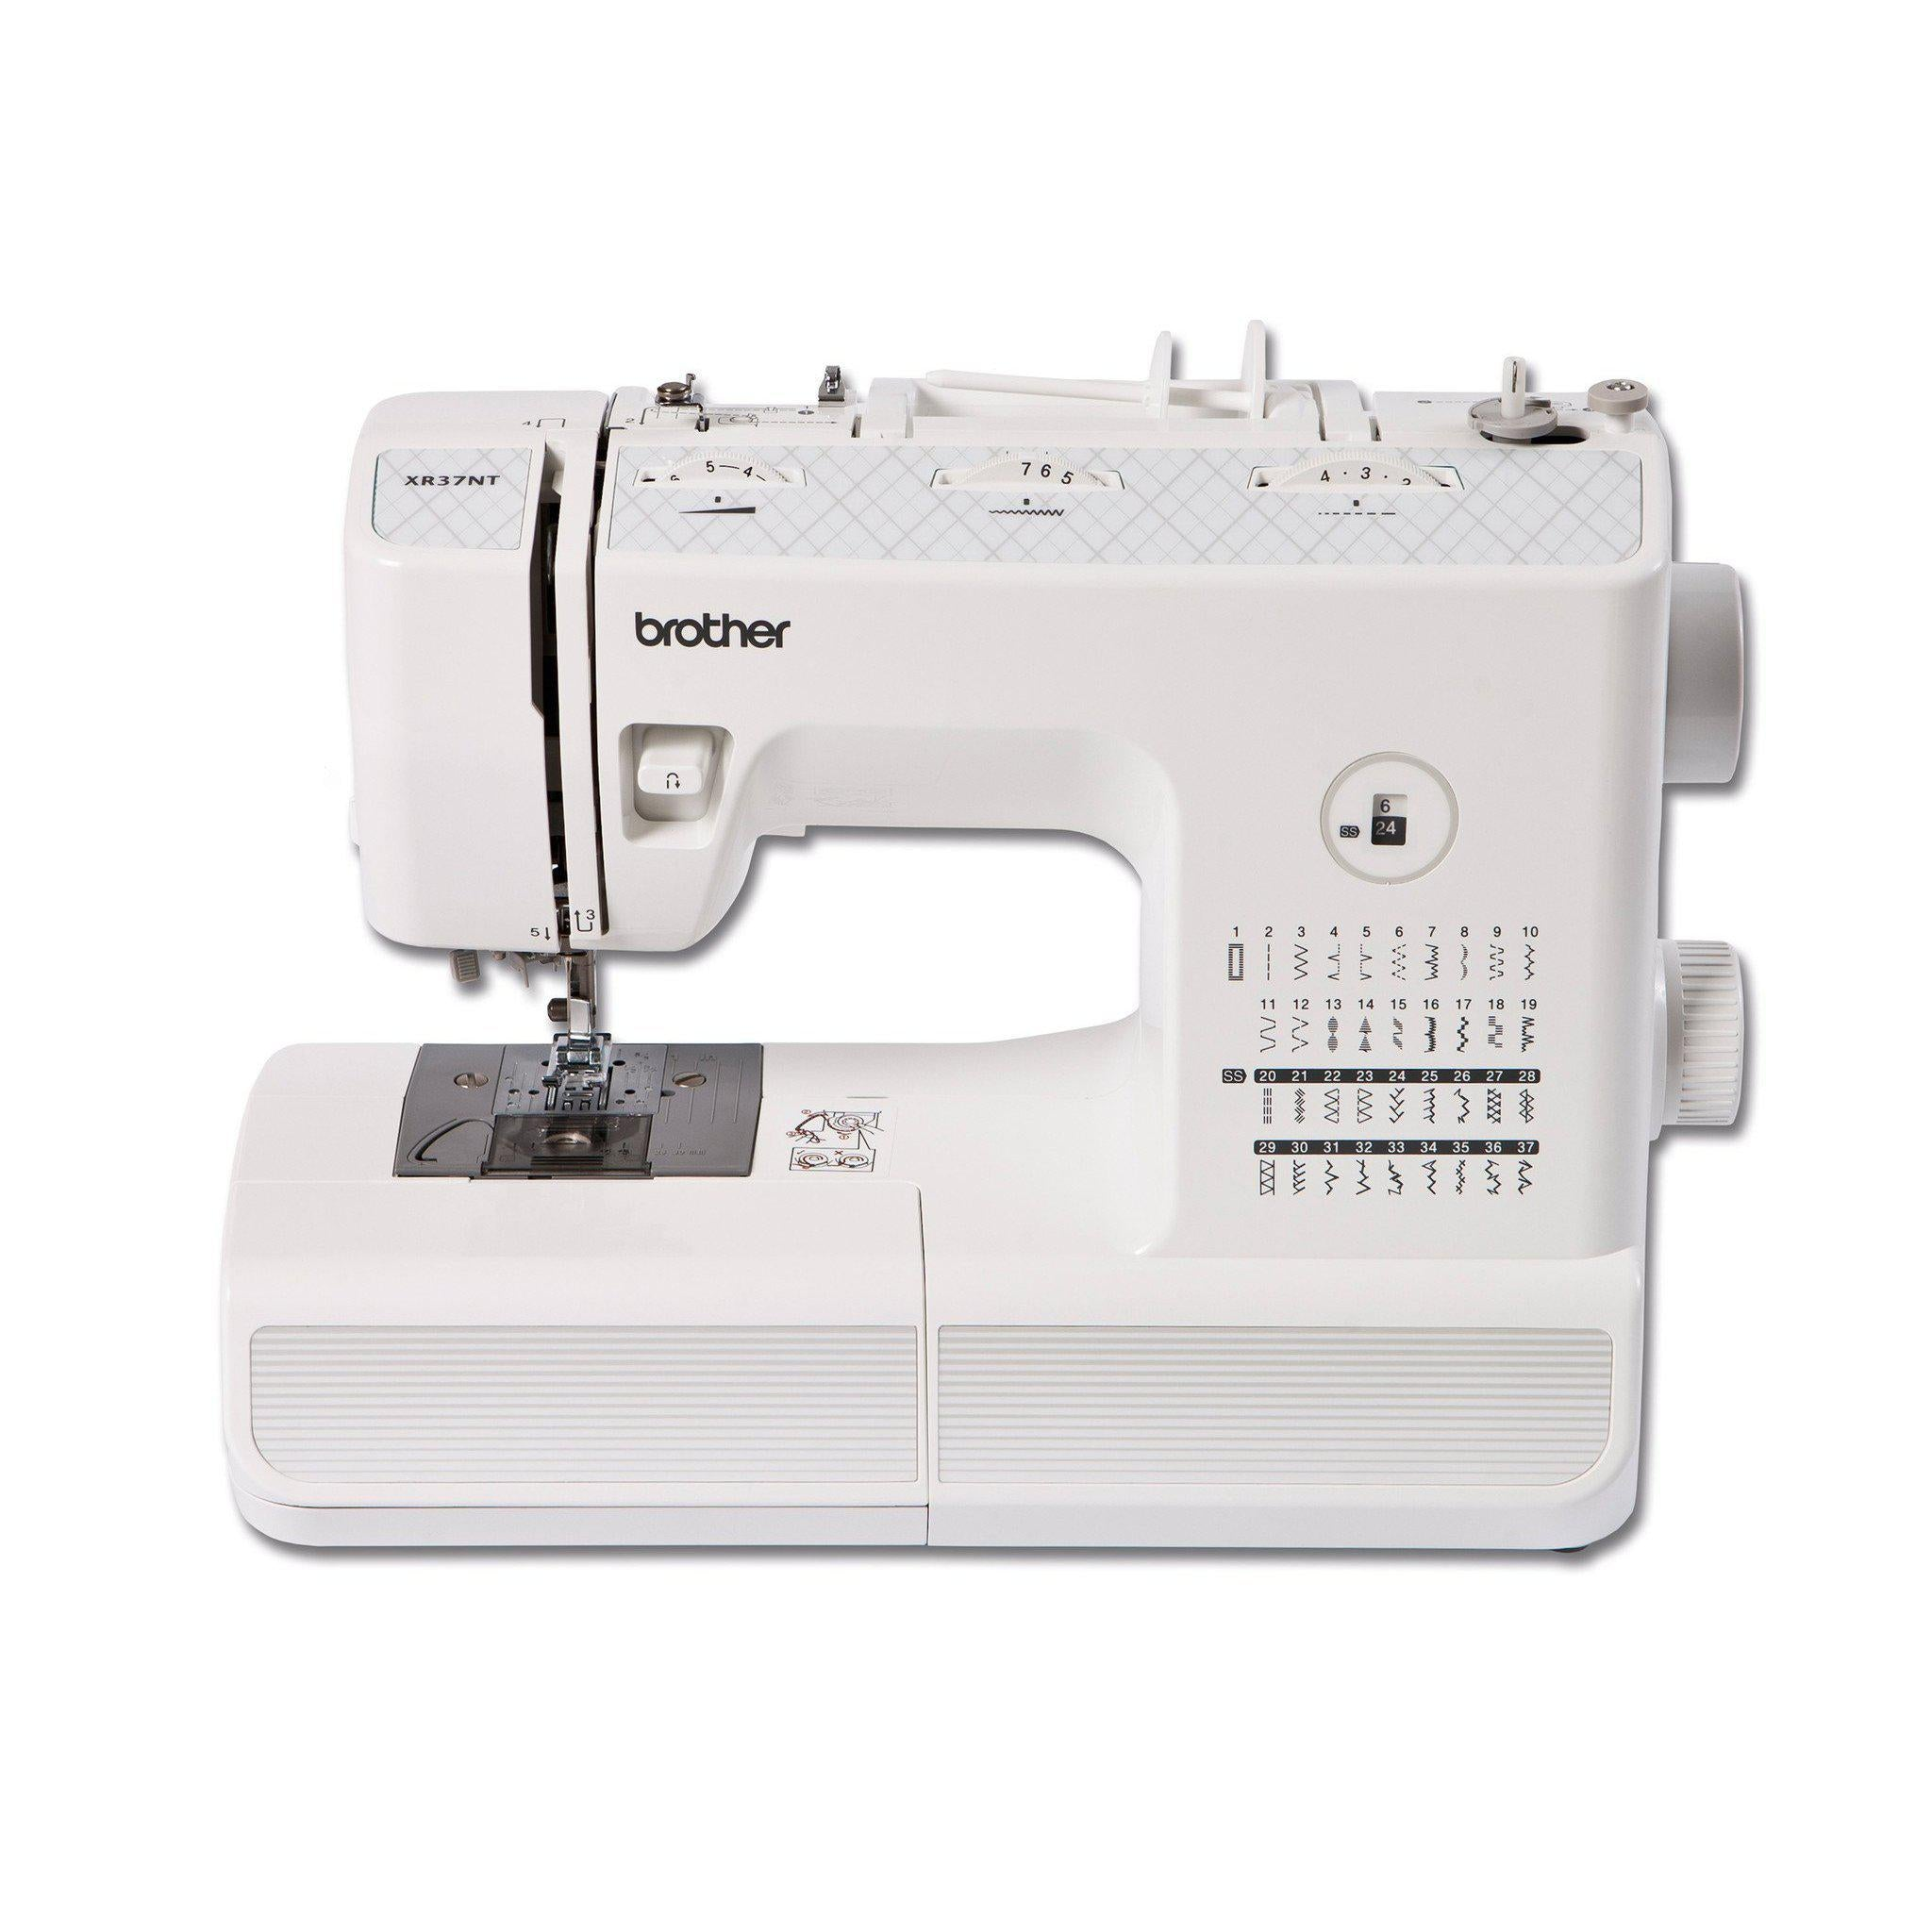 Brother XR37NT Sewing Machine Brother Sewing Machines - Fabric Mouse